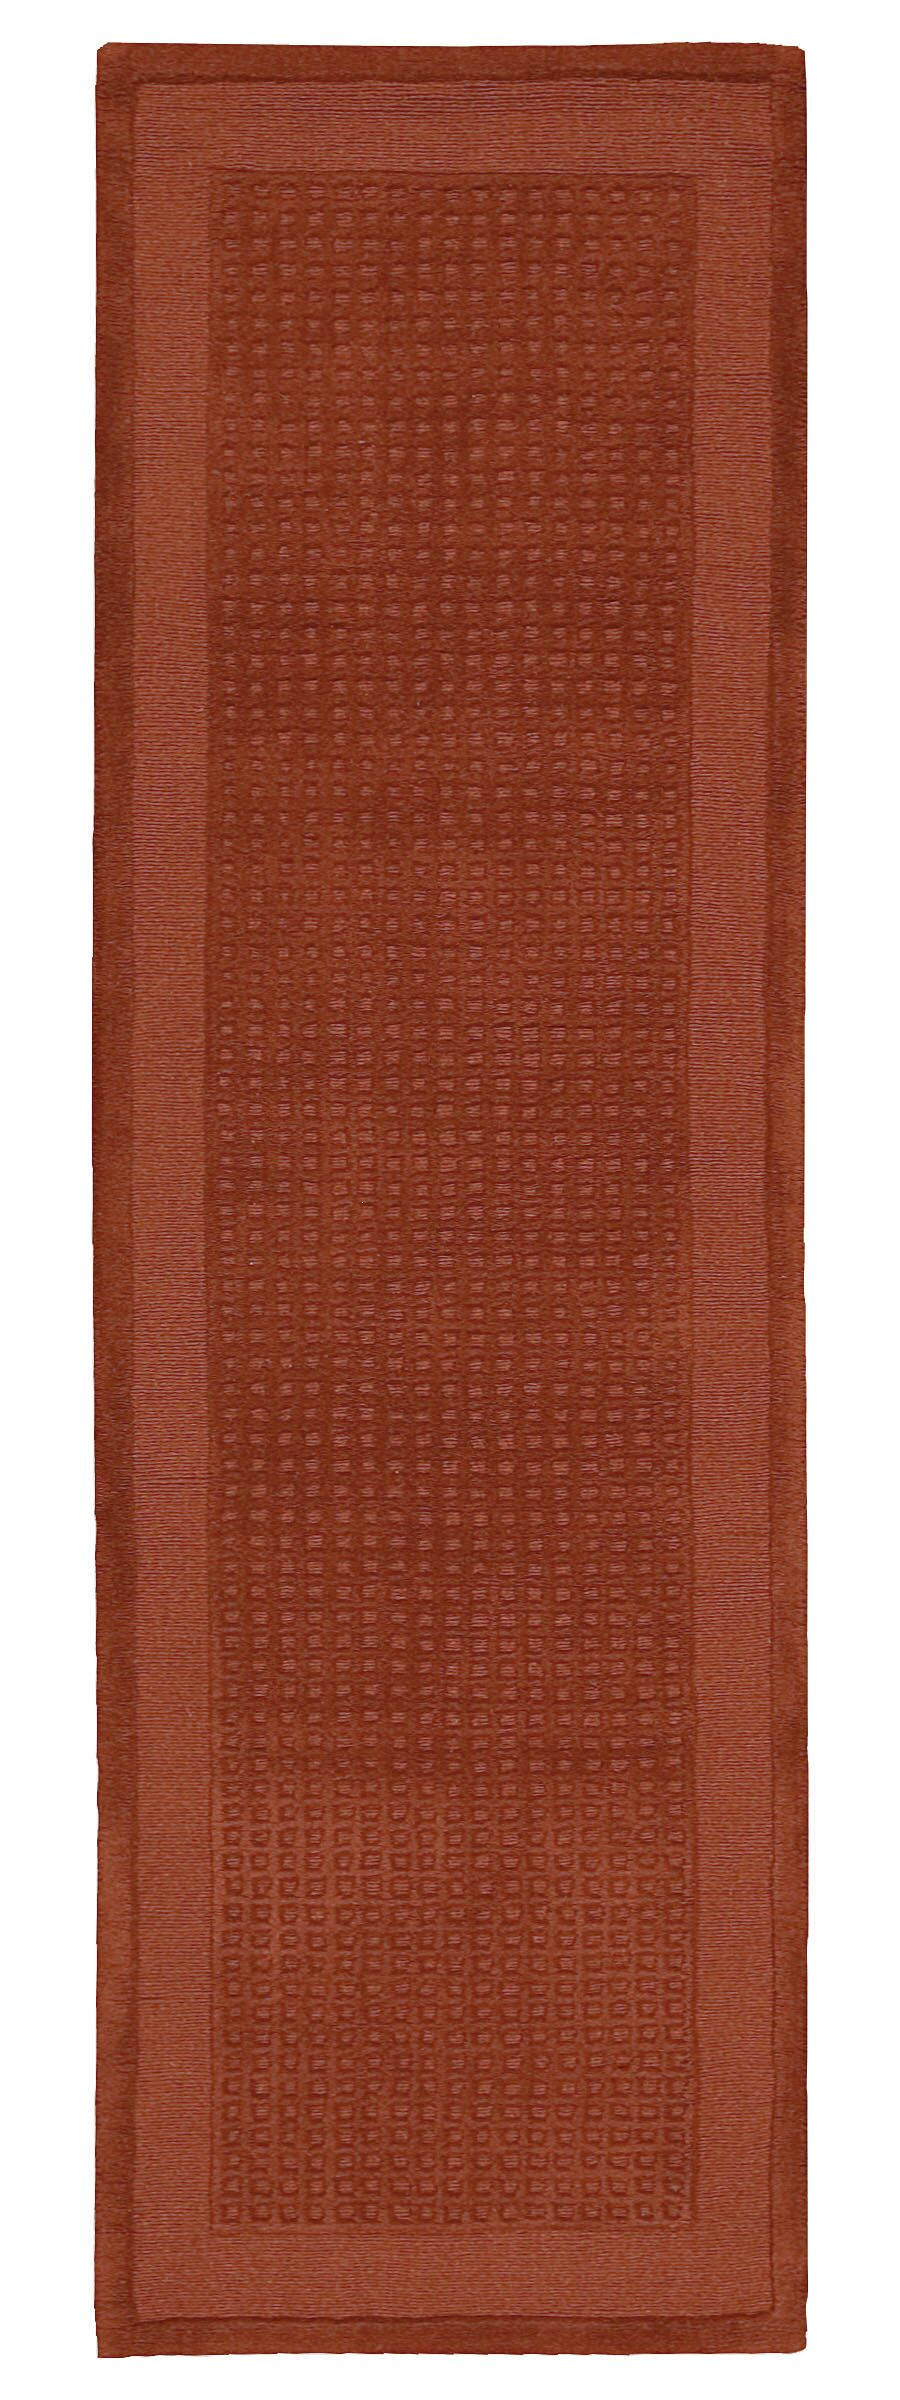 Westport Hand Tufted Spice Area Rugs